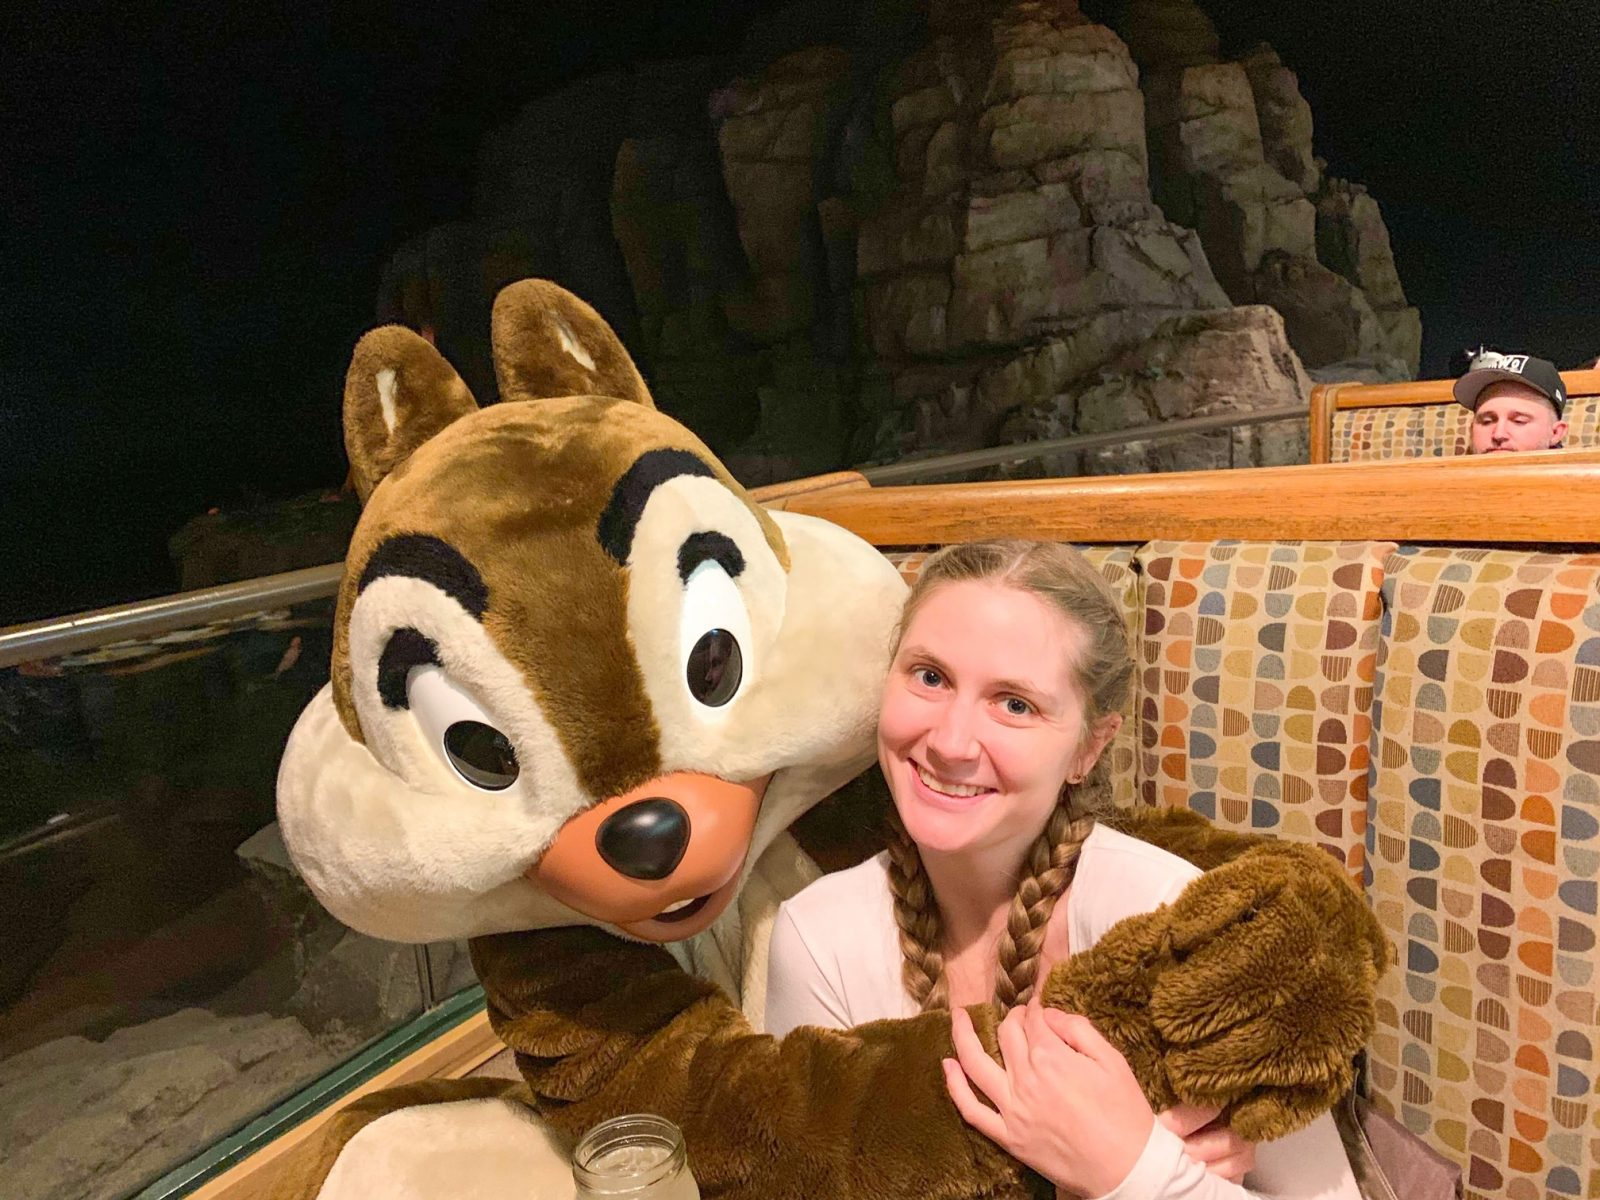 Victoria Yore with Chip at Disney Character Dining